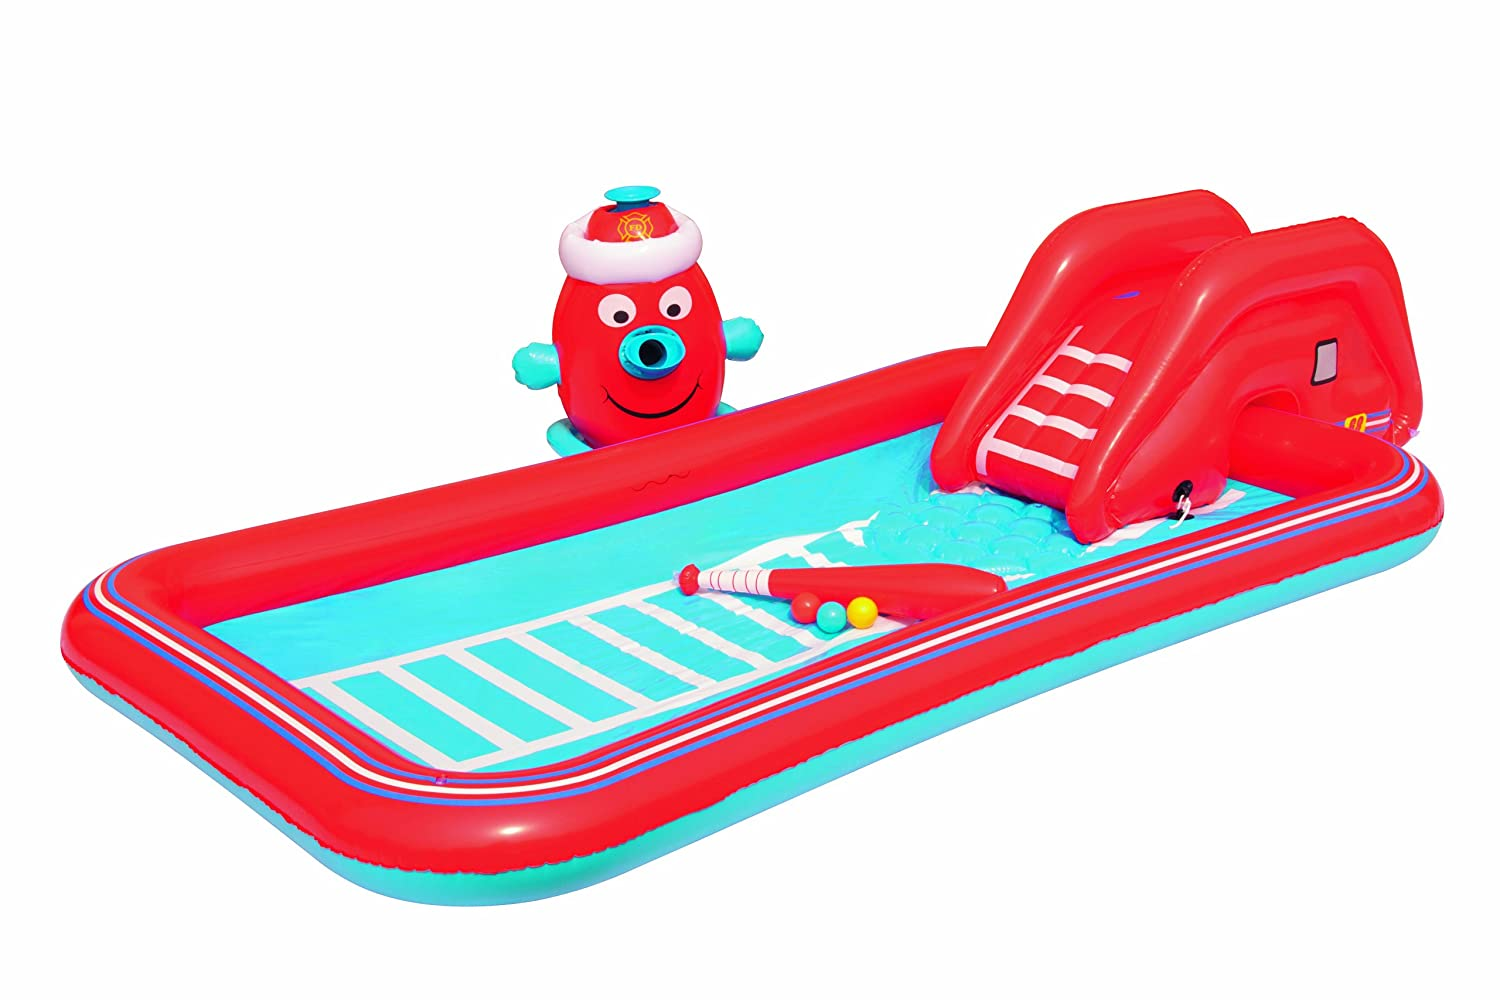 Bestway 53047 - Planschbecken Interactive Fire Truck Play Pool, 251 x 124 x 51 cm